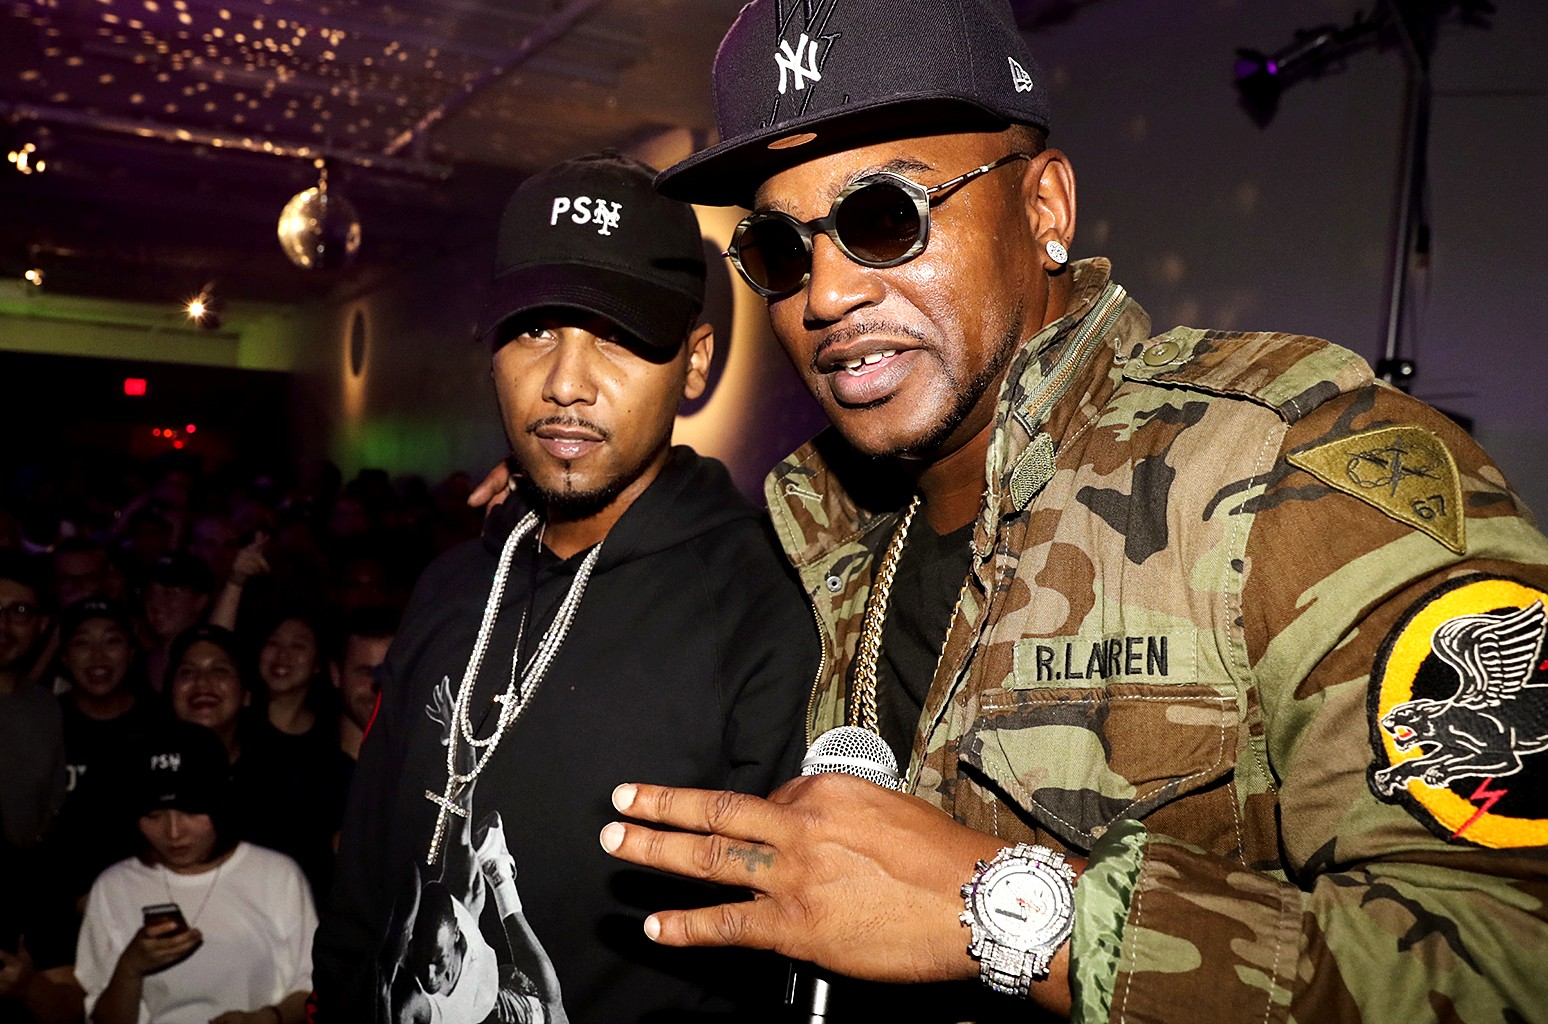 Juelz Santana and Cam'ron perform at the Public School New Era Party at 231 Bowery on Sept. 29, 2016 in New York City.